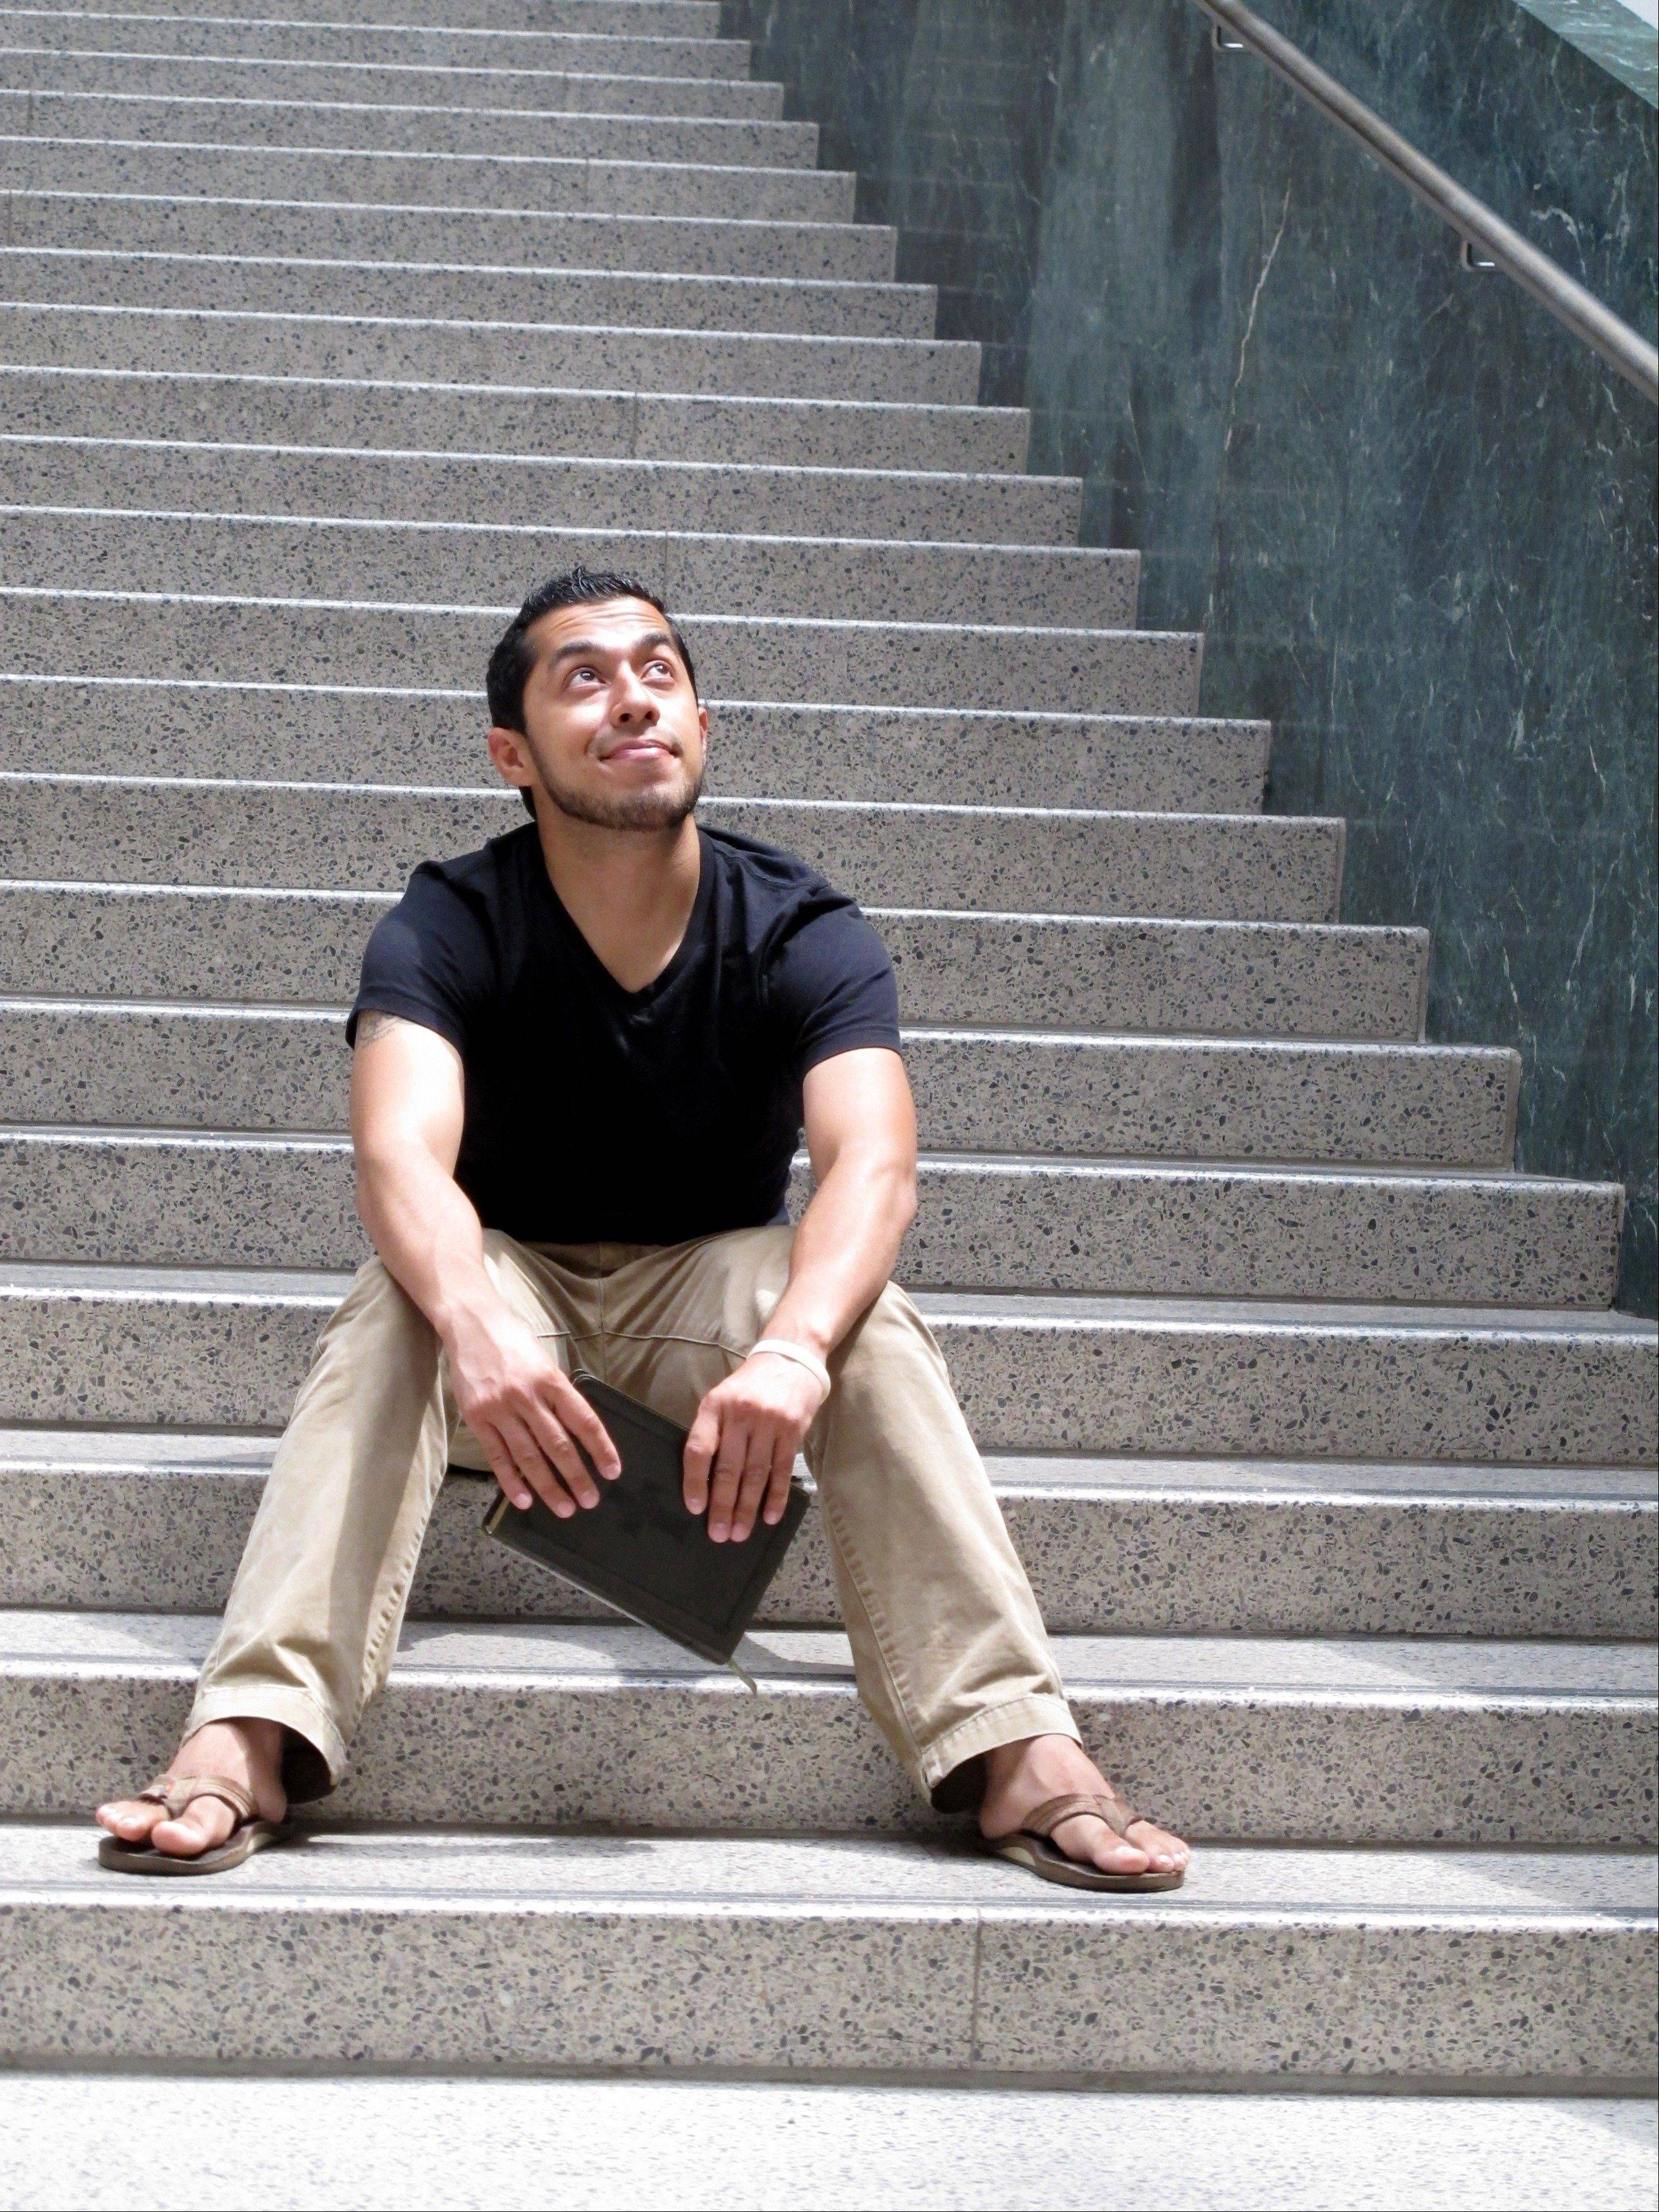 "Recent Ohio State University graduate Erik Santamaria sits on a campus library stairway in Columbus, Ohio. He's 30, between jobs, with $50,000 in student debt, and no clear sense what the future holds. But Erik Santamaria, Ohio-born son of Salvadorans, has a pretty awesome attitude about his country, his life and the world of possibilities. ""Maybe things won't work out the way I want,"" he offers. ""But, boy, I sure can't complain about how things have worked out so far."""